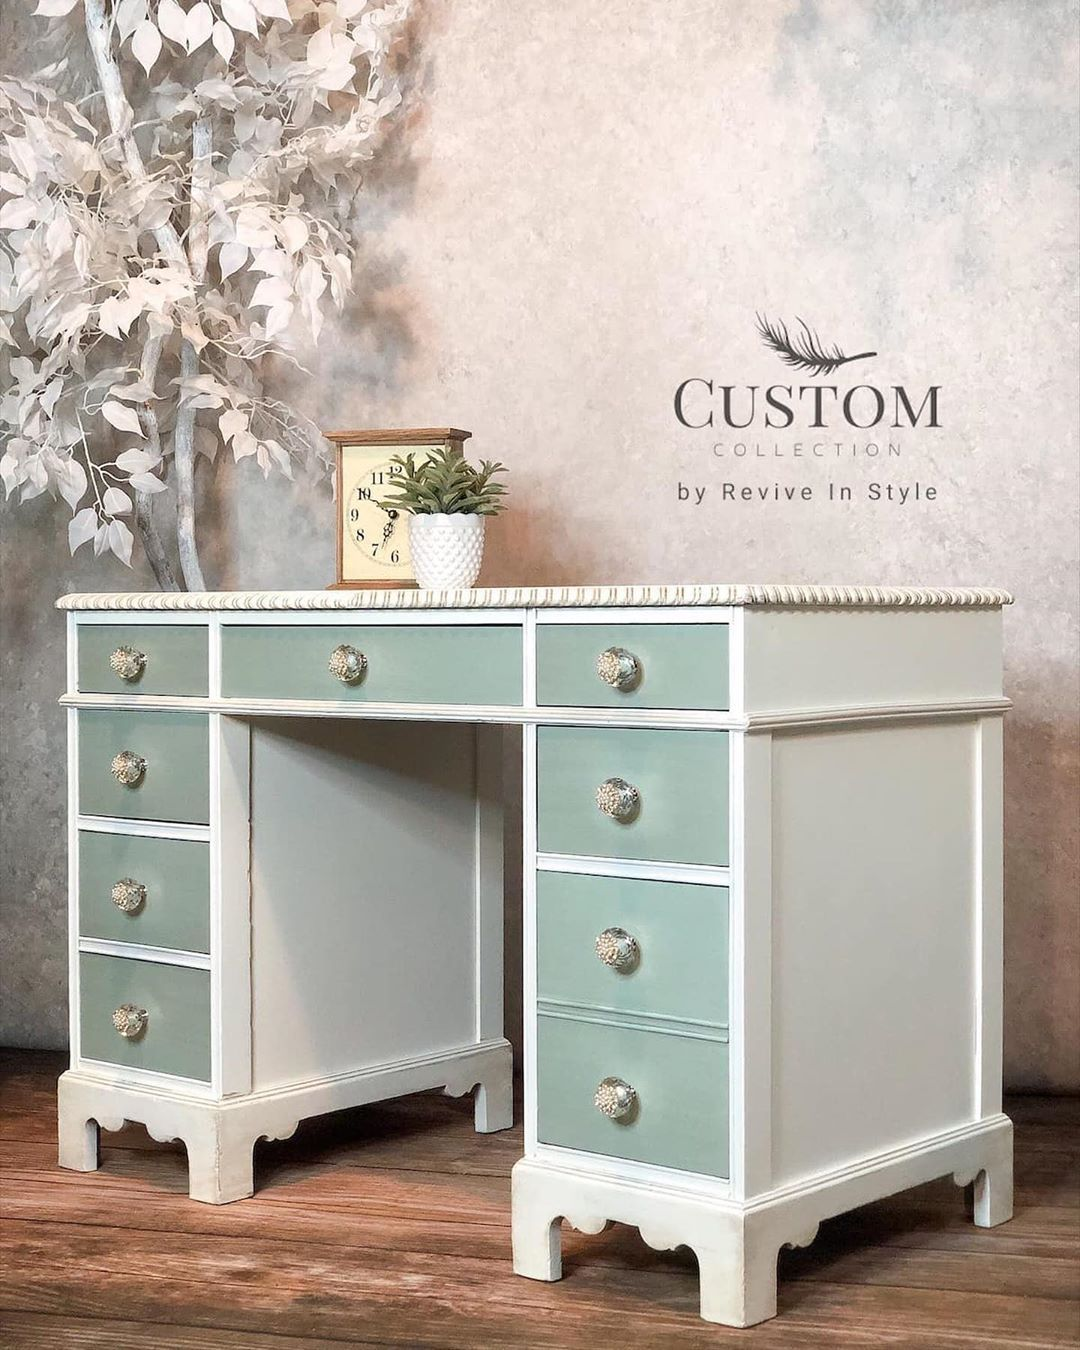 "alicia 👩‍🎨 on Instagram: ""SERENE DESK  Custom Collection #furniturerestoration #desk #paintedfurniture #vintagestyle #furniturerefinishing #reviveinstyle"""